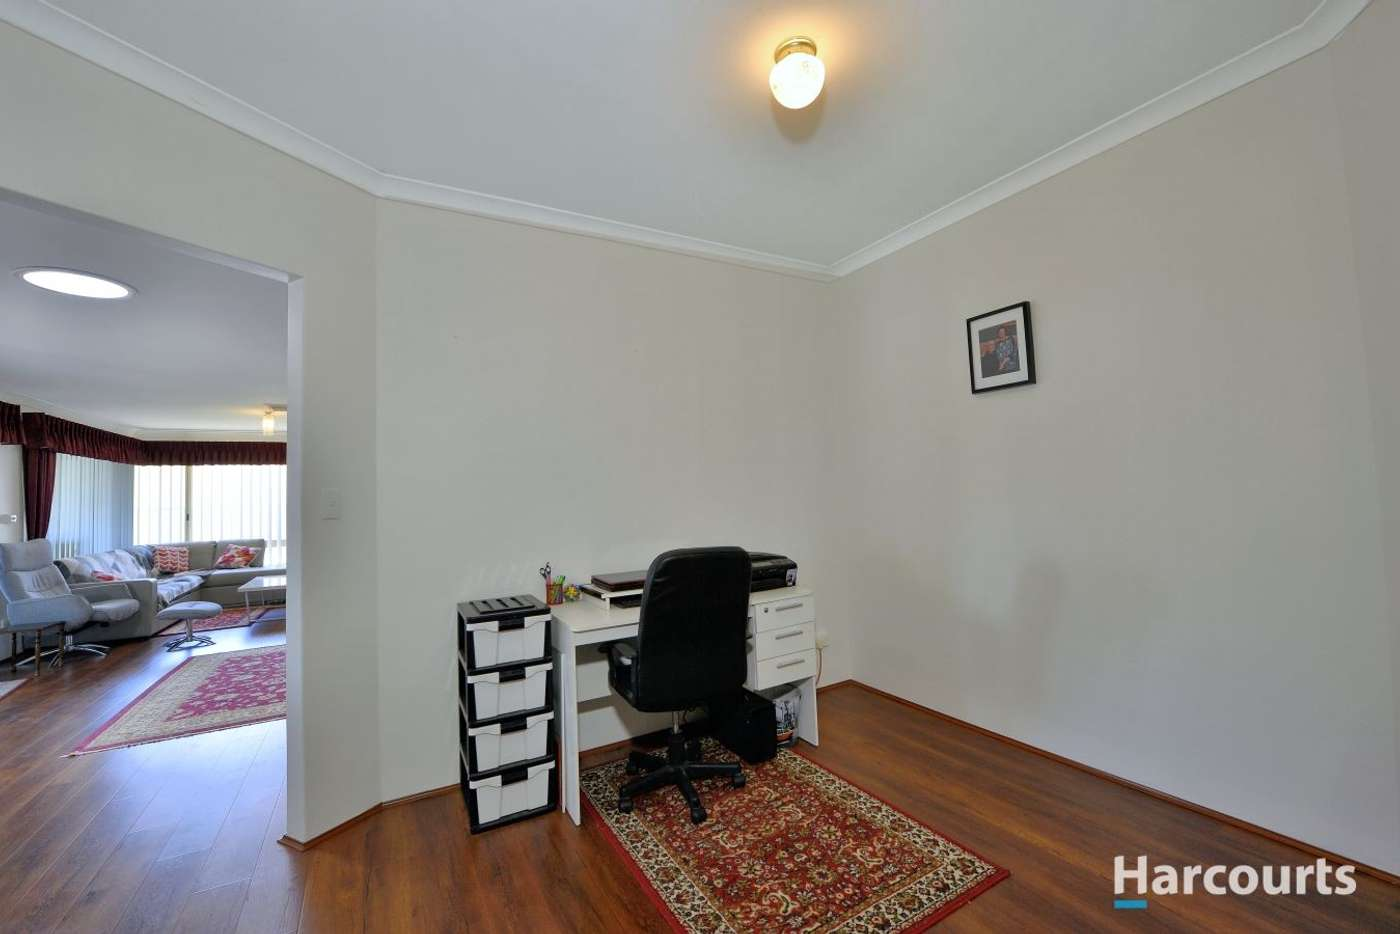 Seventh view of Homely house listing, 13 Erica Street, Coodanup WA 6210